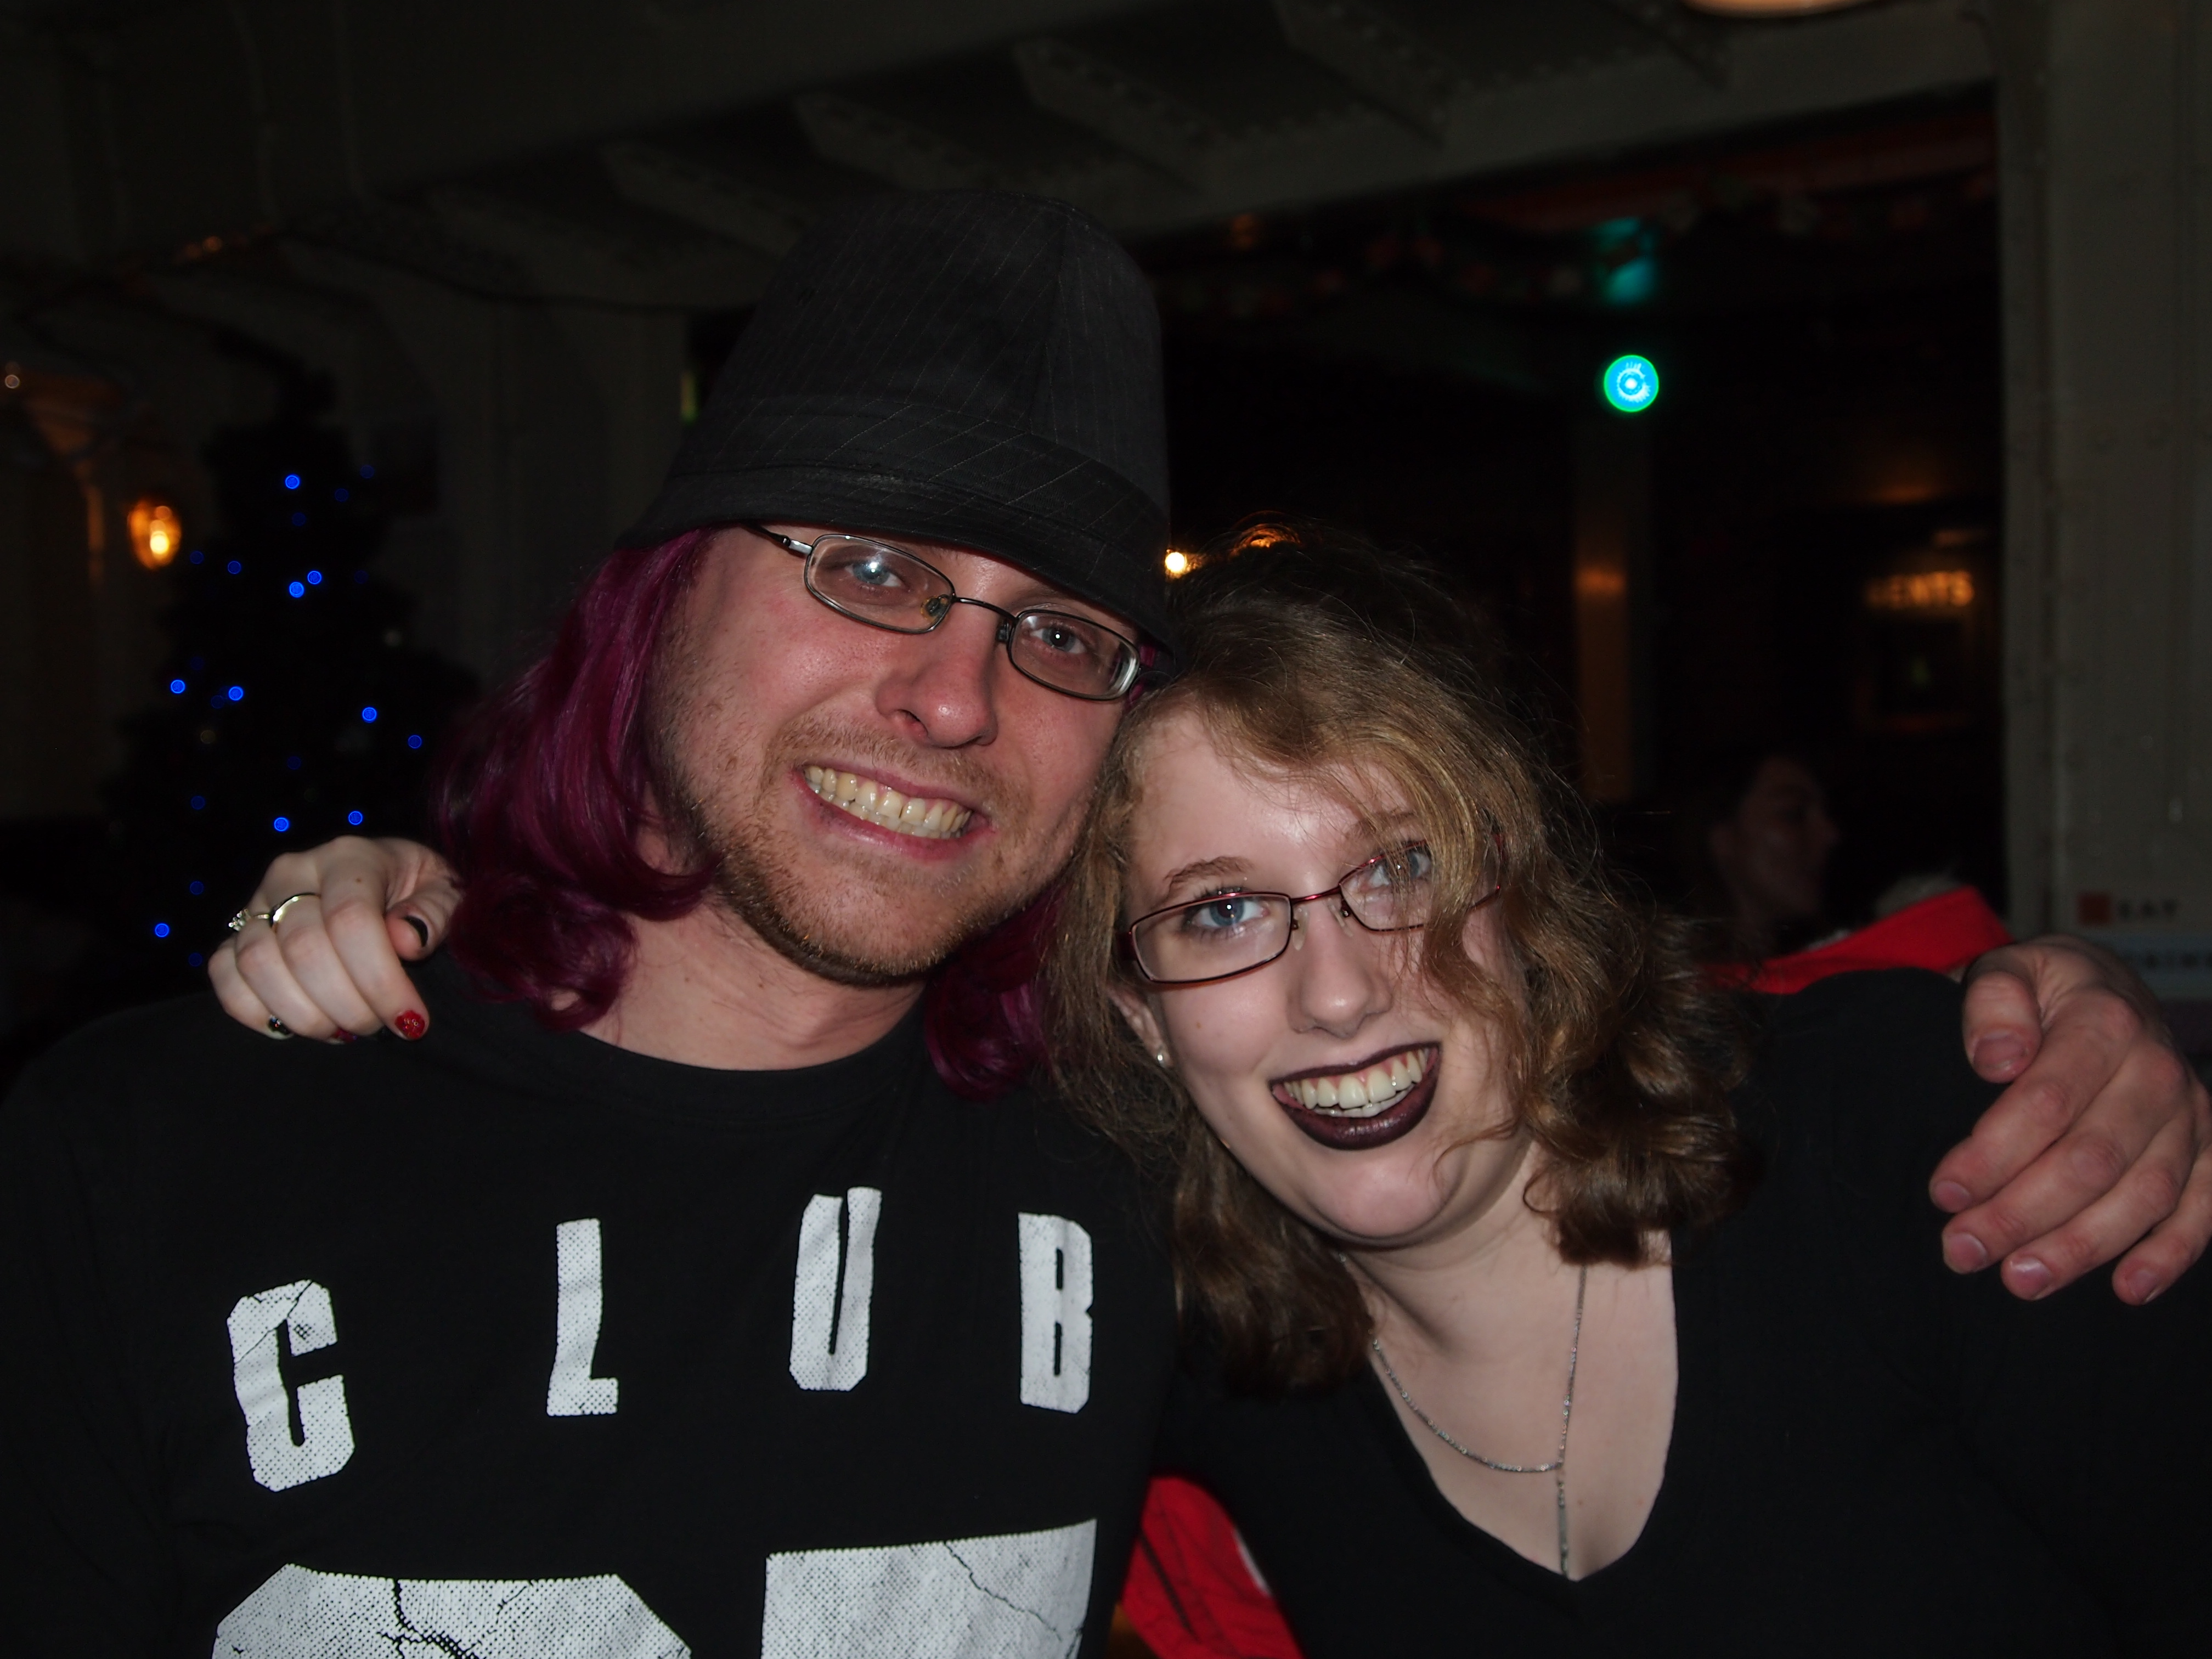 My husband & I when we were students, sat in a local bar at Christmas time. The room is fairly dark but you can see a Christmas tree in the background. We're facing the camera with our arms around each others shoulders.